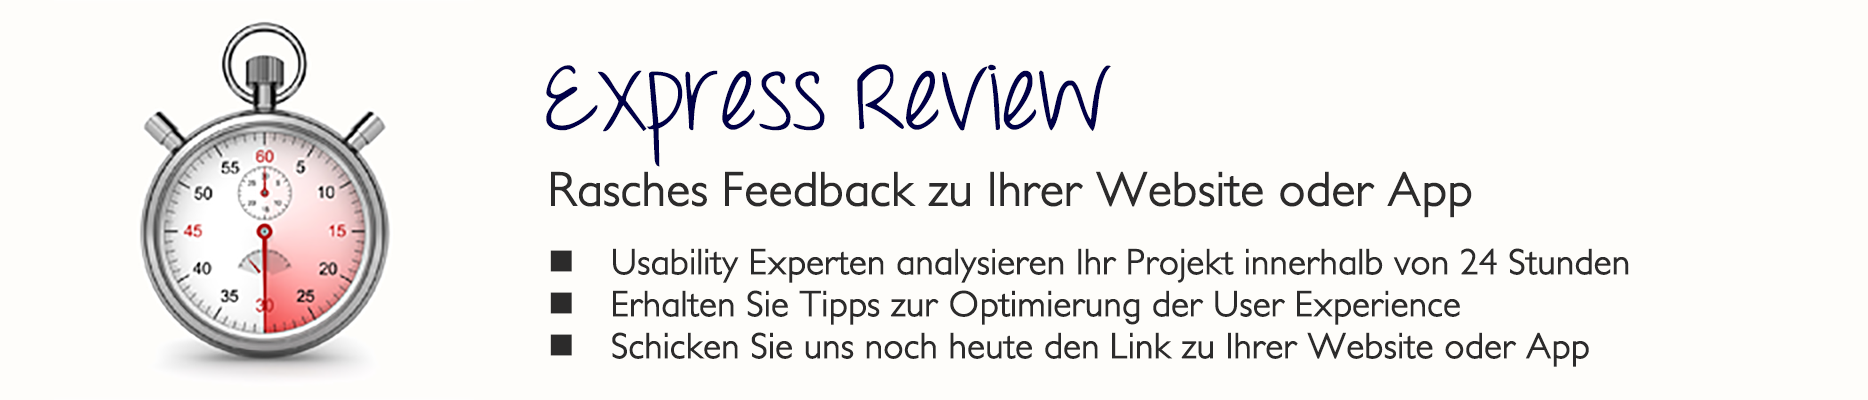 Web Express Review